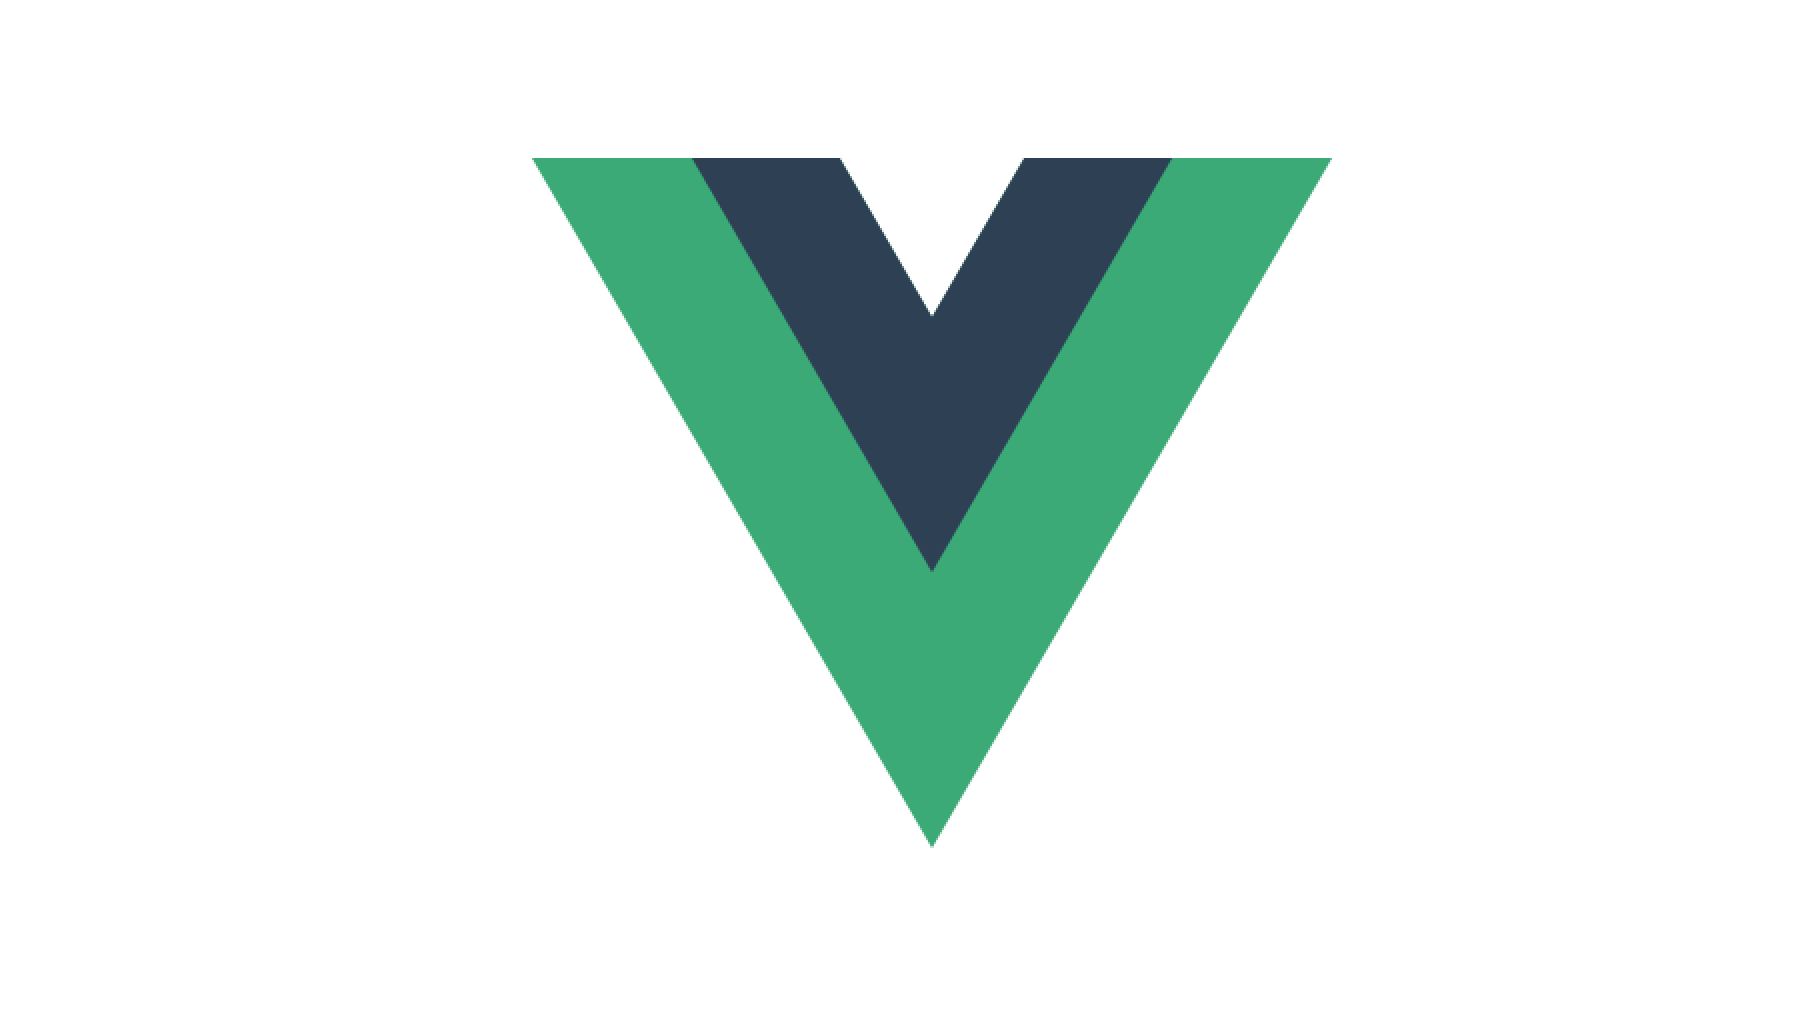 Using Streamline Icons with Vue.js